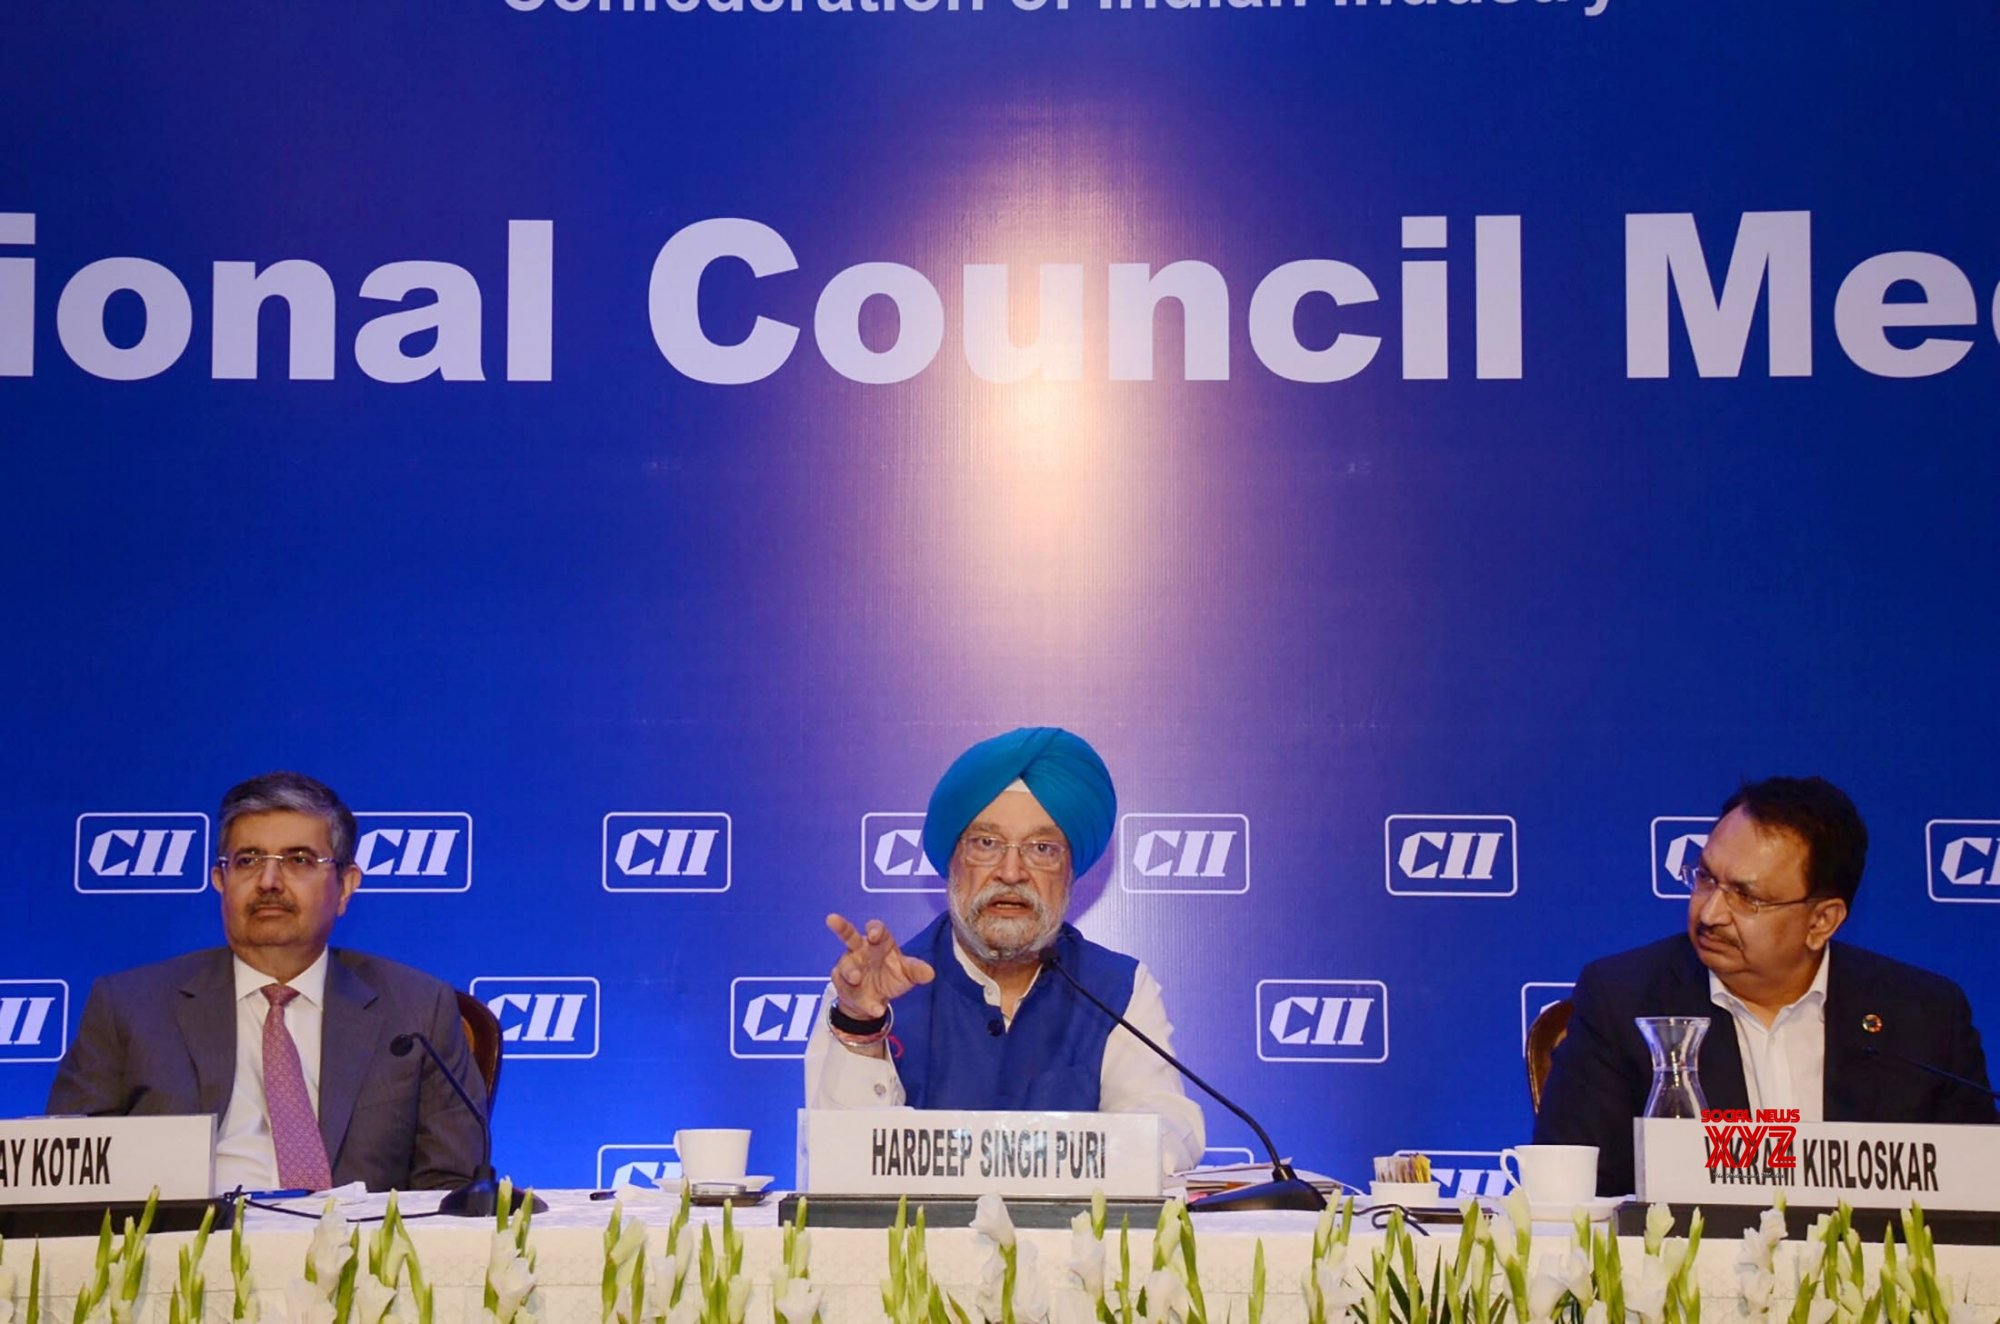 New Delhi: Hardeep Singh Puri at the National Council Meeting of CII #Gallery